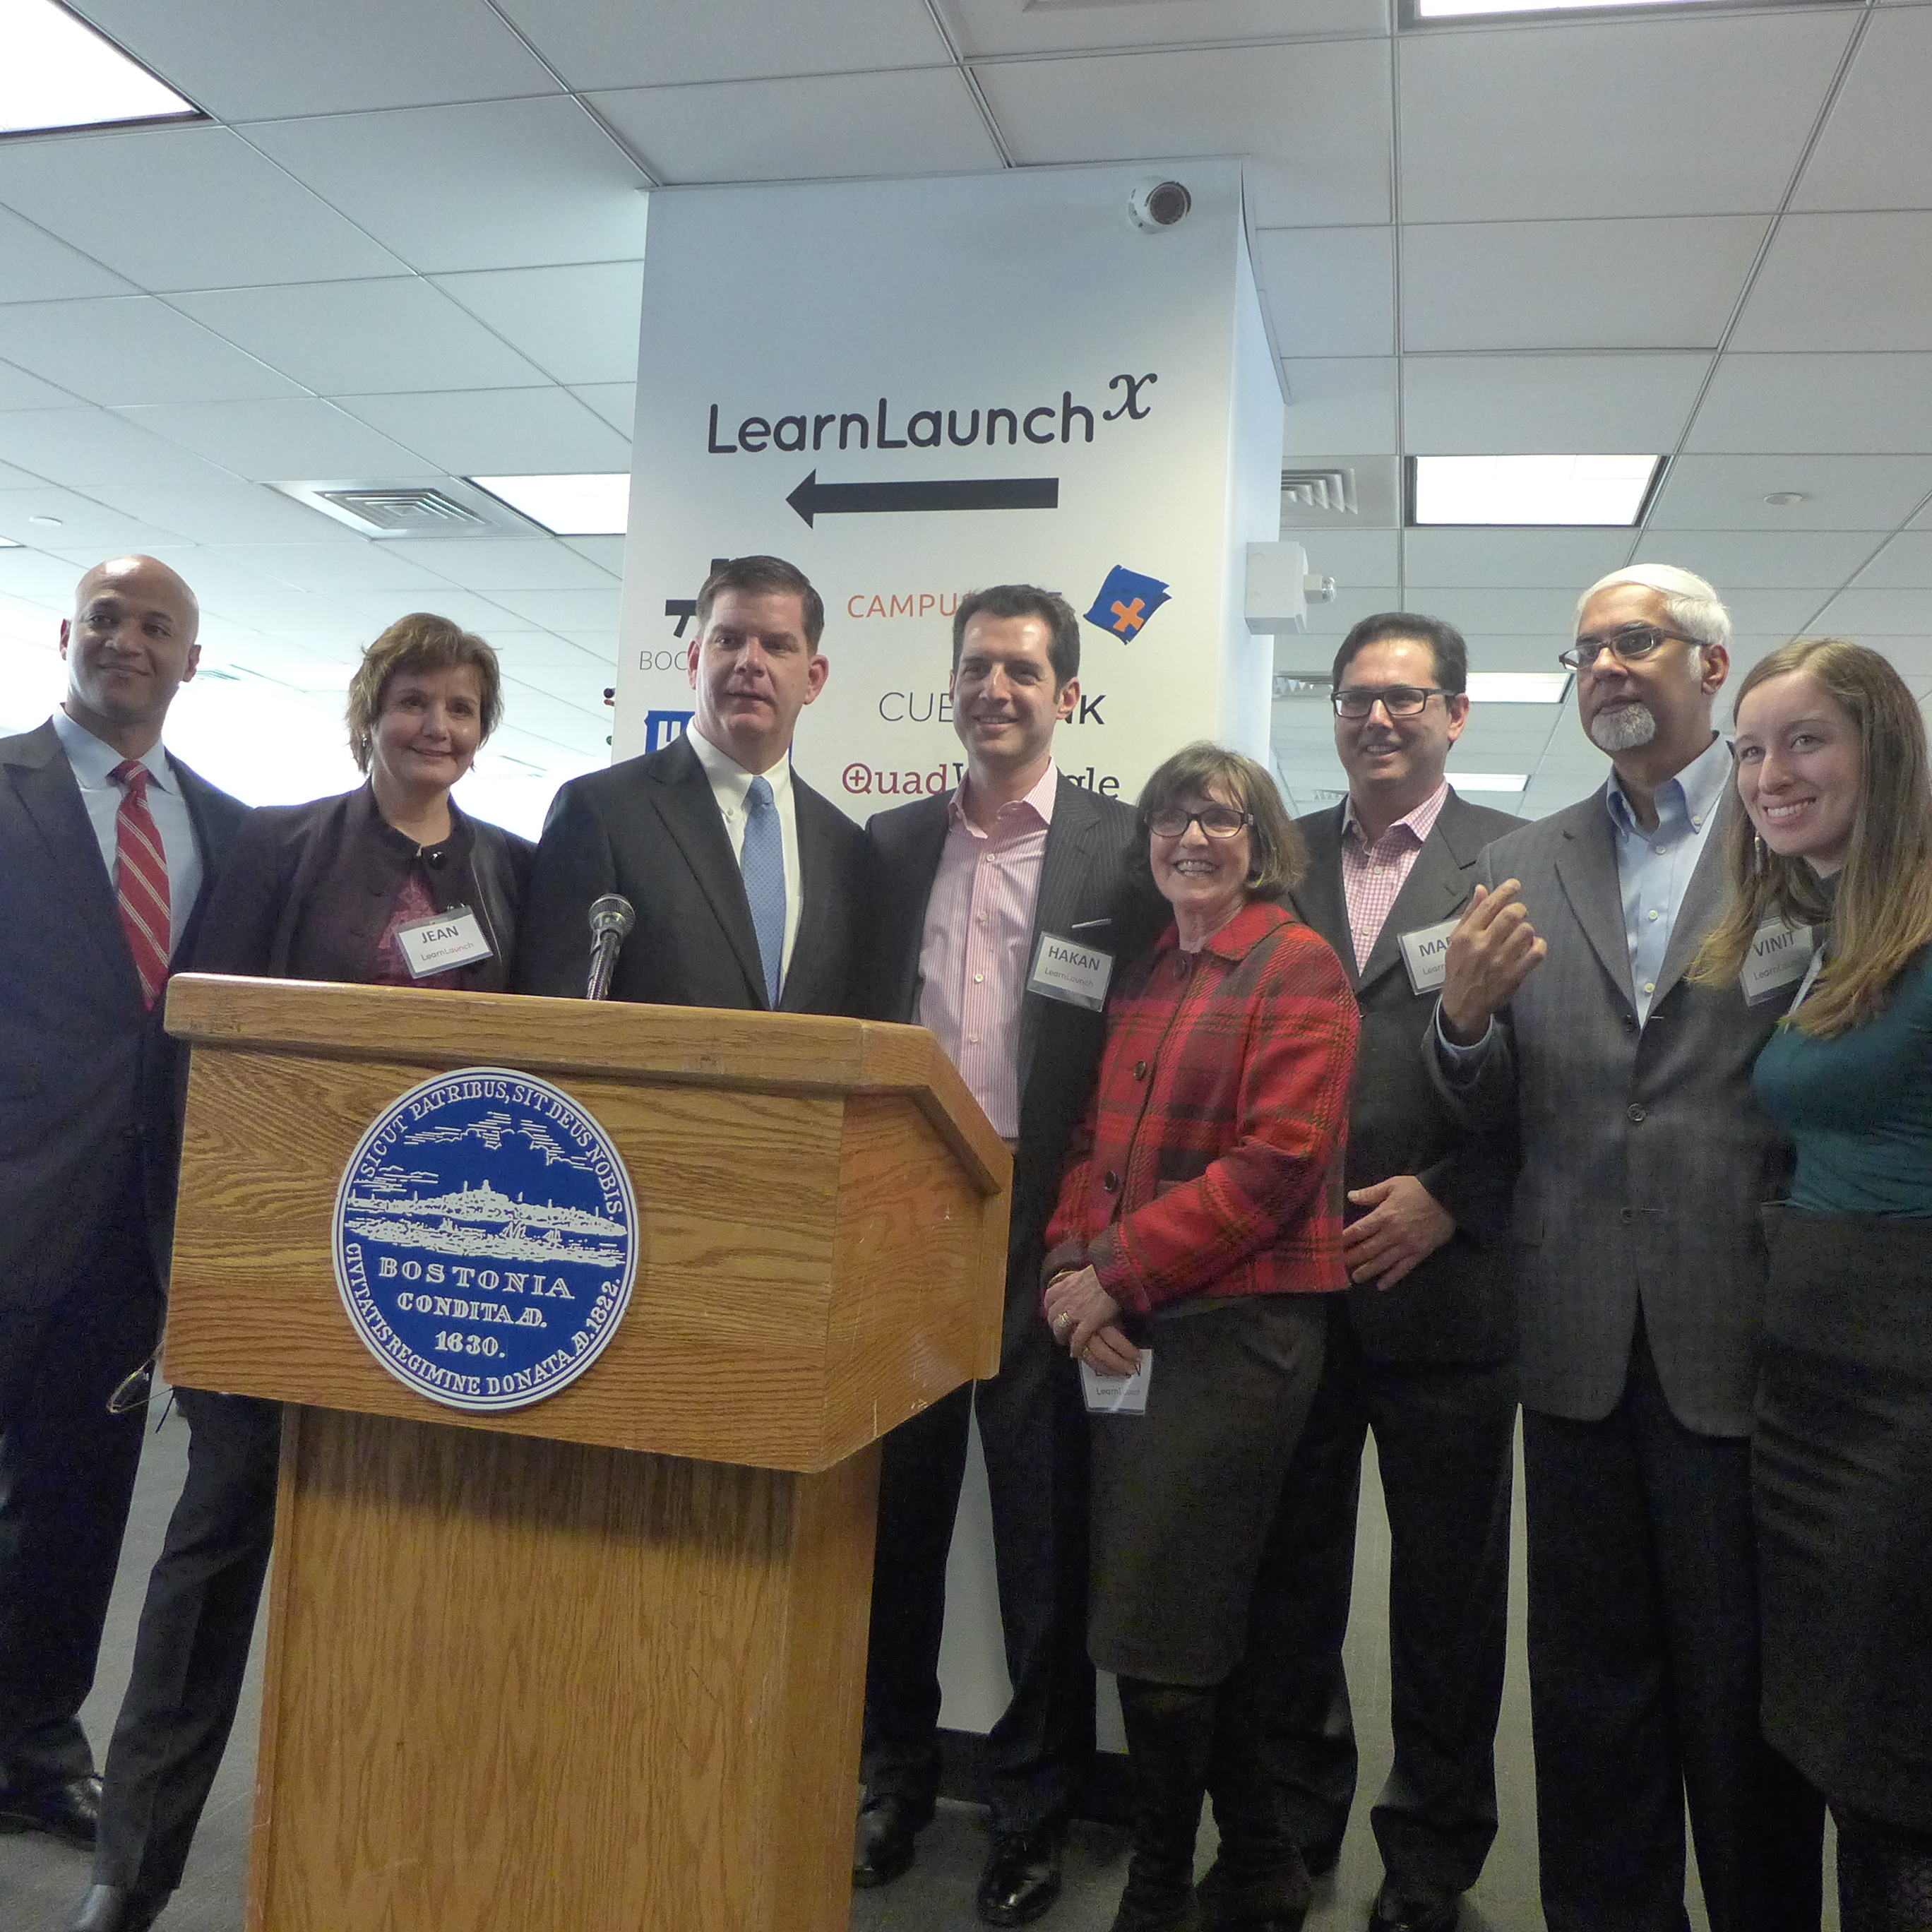 The Boston mayor with LearnLaunch founders